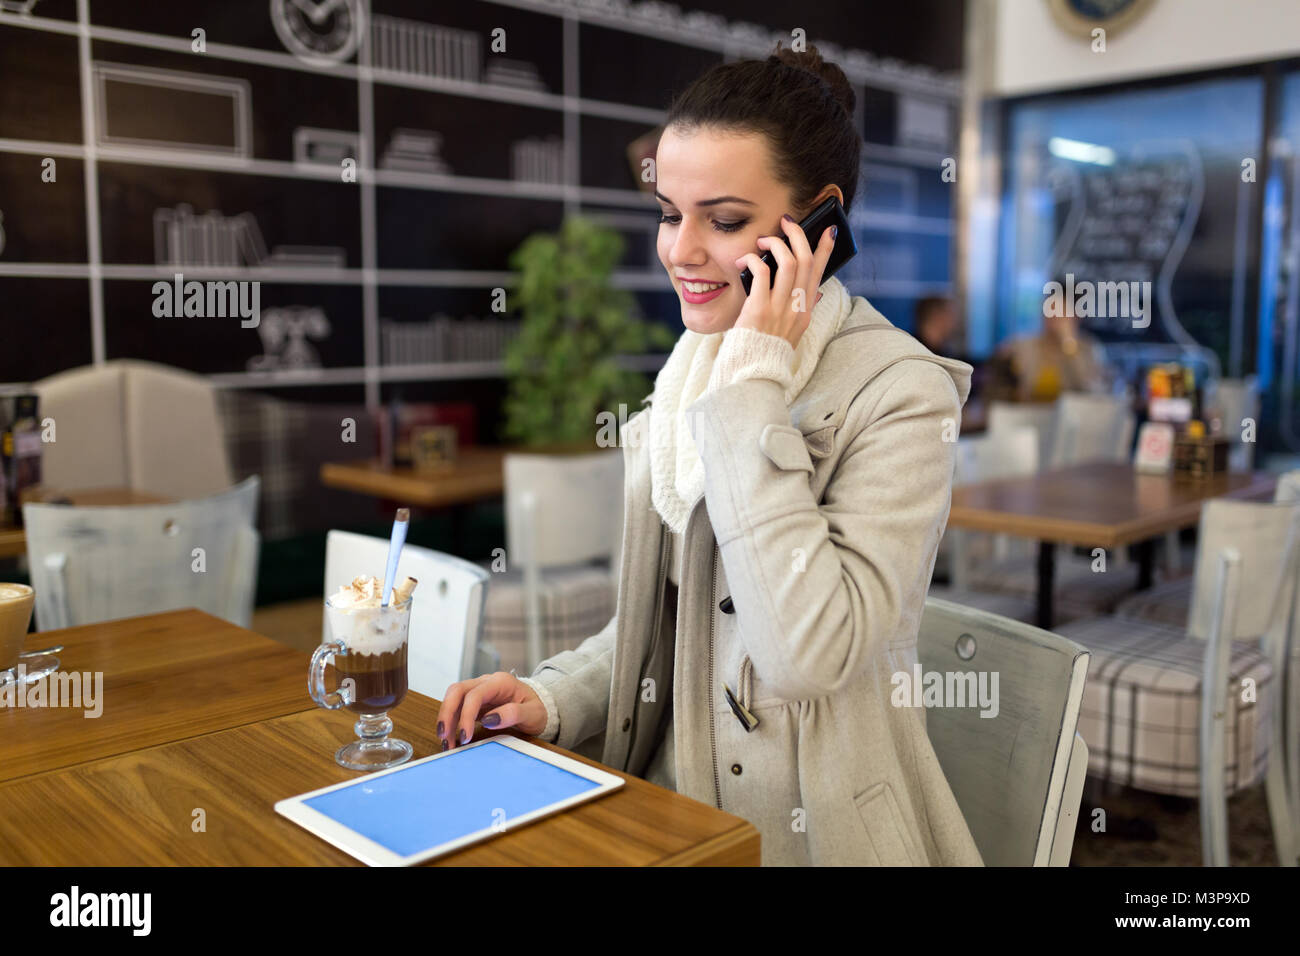 Attractive young woman using tablet in cafe - Stock Image